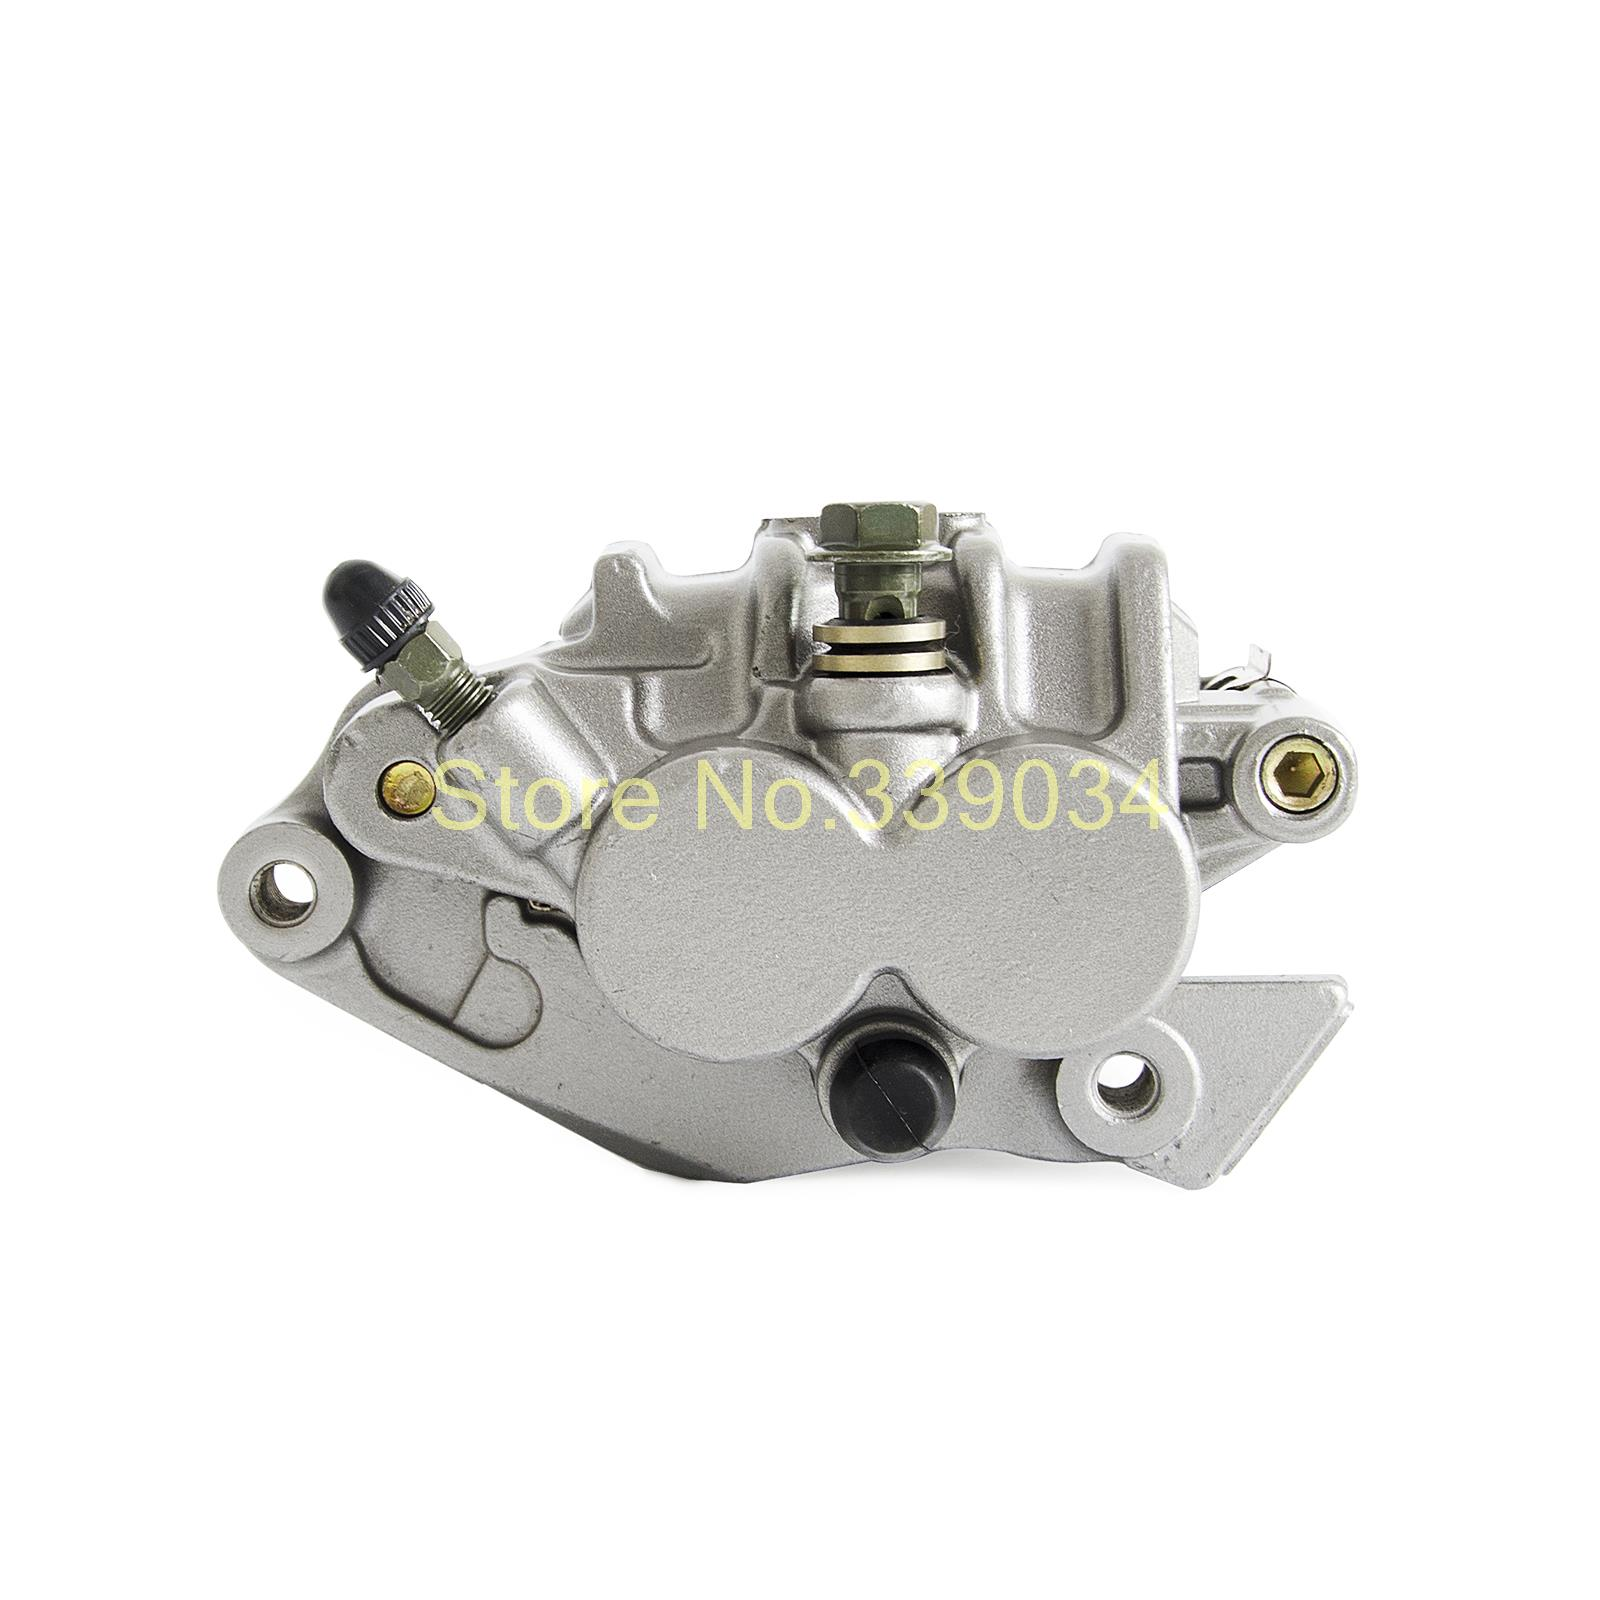 Front Brake Caliper With Pads For Honda CR125R/CR250R 2000 CRF150F 2003-2009 2012-2016 motorcycle front and rear brake pads for honda cr125r cr250r cr500r cr 125 250 500 r 1987 2001